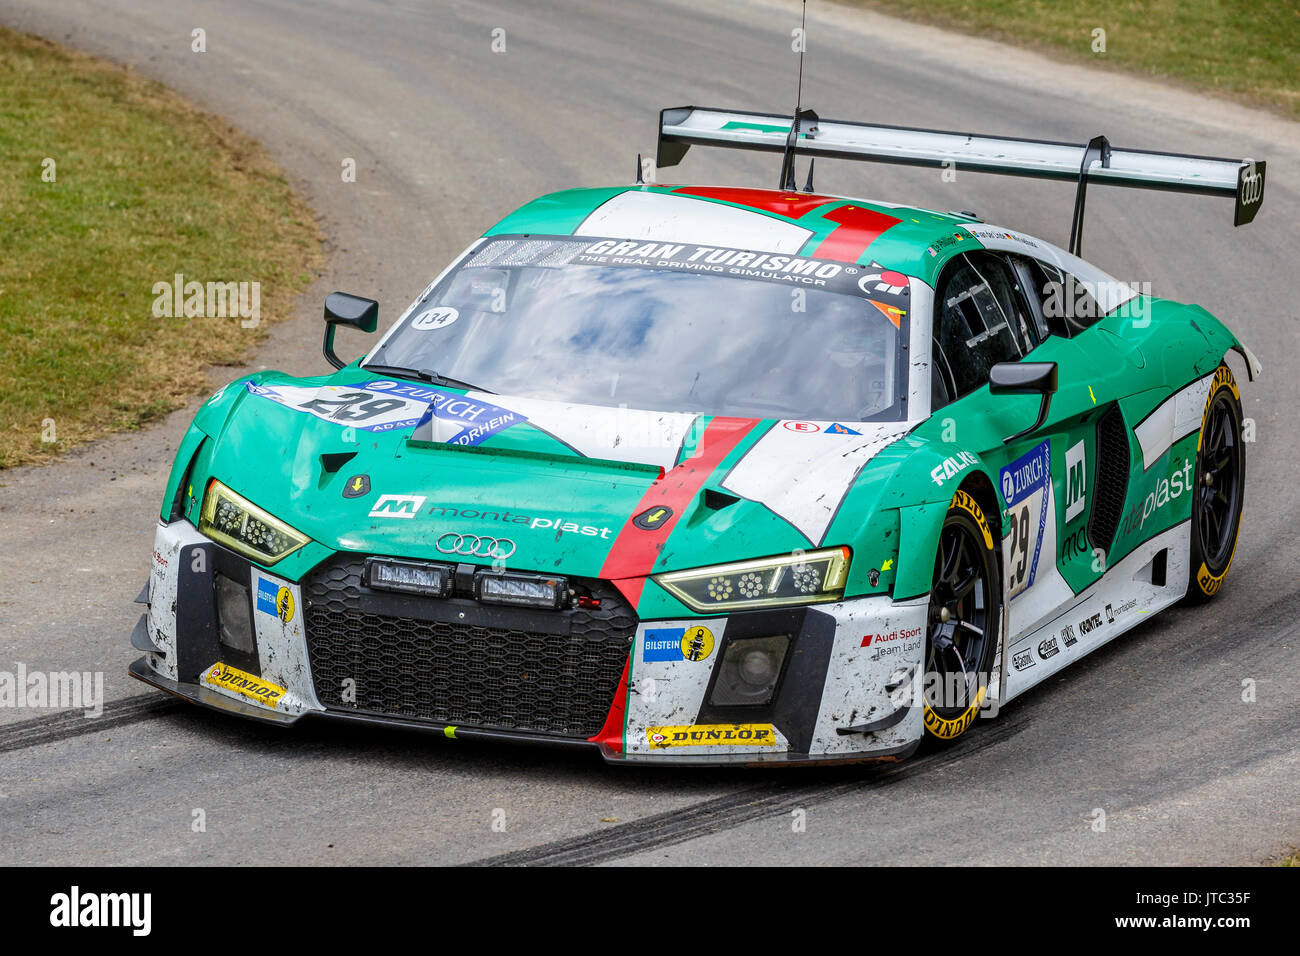 Audi r8 lms sports racing stock photos audi r8 lms sports racing 2017 audi r8 lms gt3 le mans endurance racer with driver connor de phillippi at the publicscrutiny Images